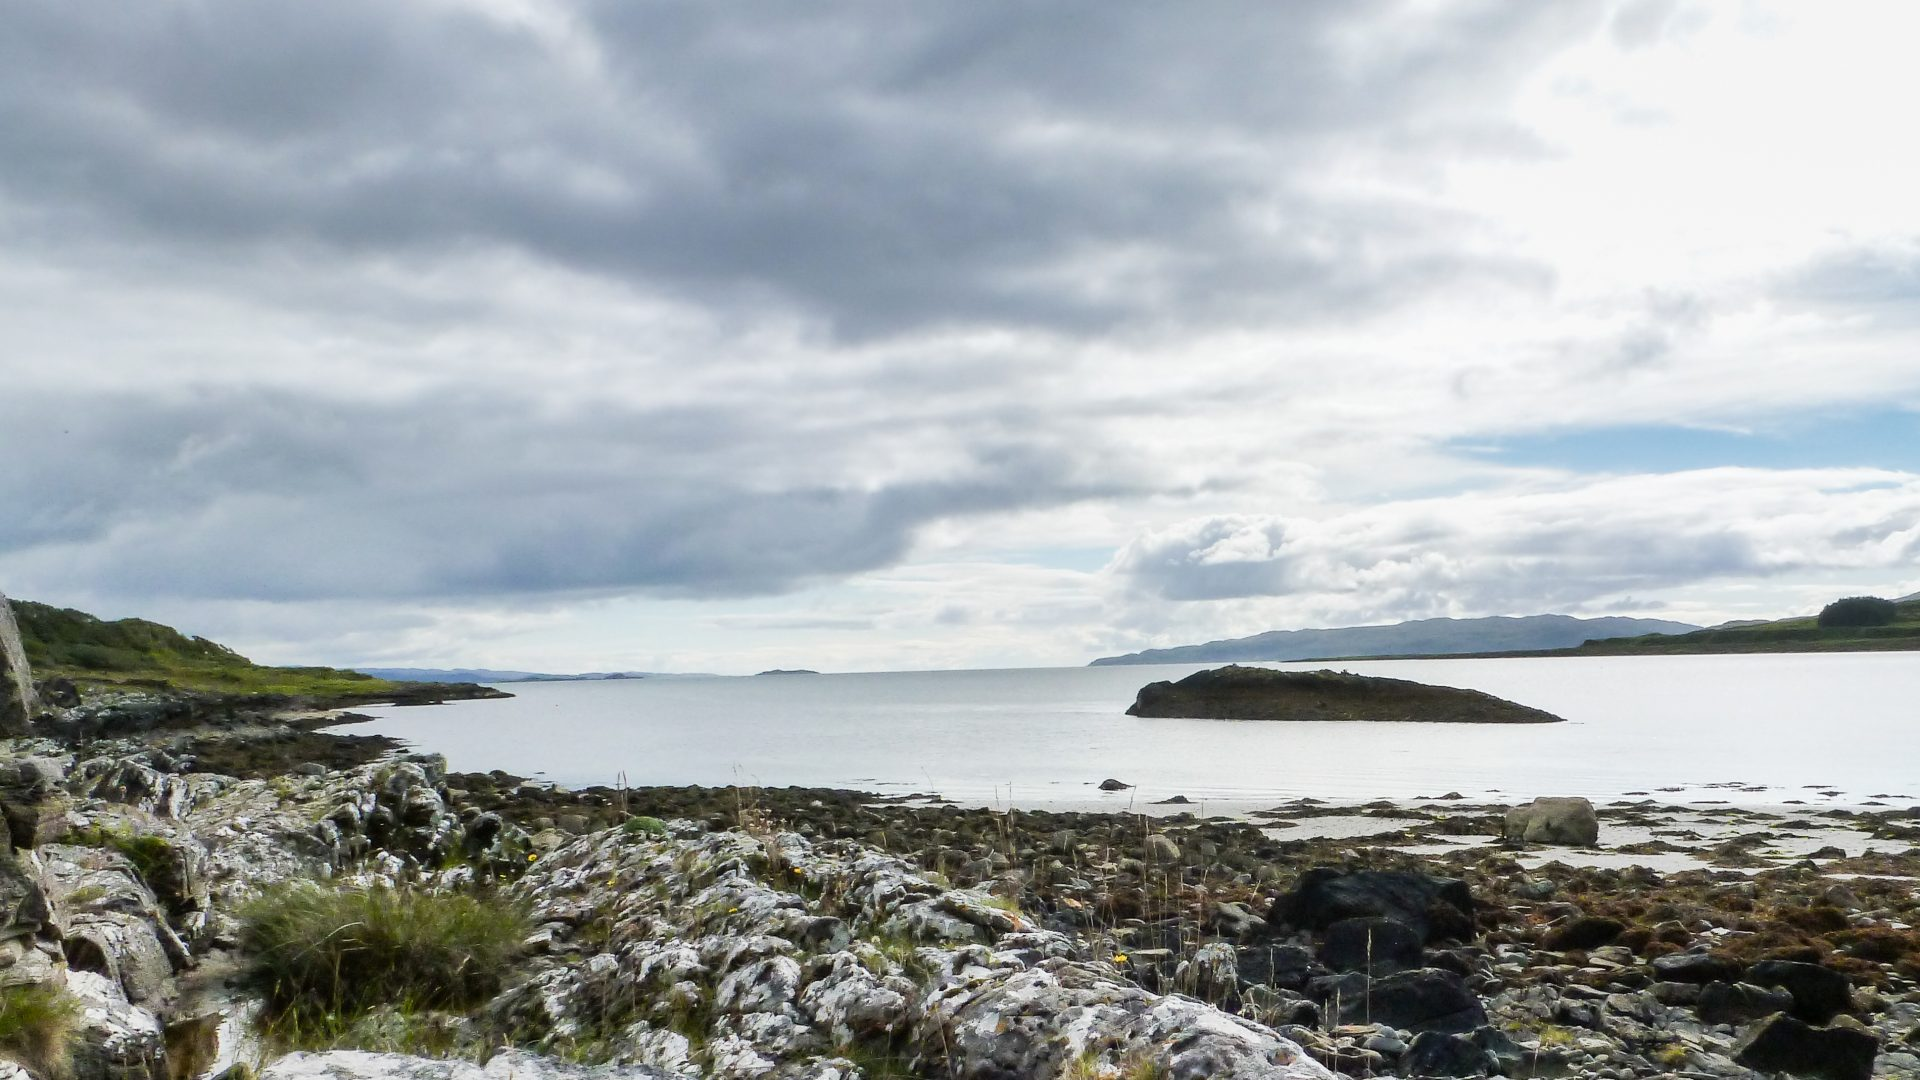 Experiencing nature: South Bay, Shuna, an island escape